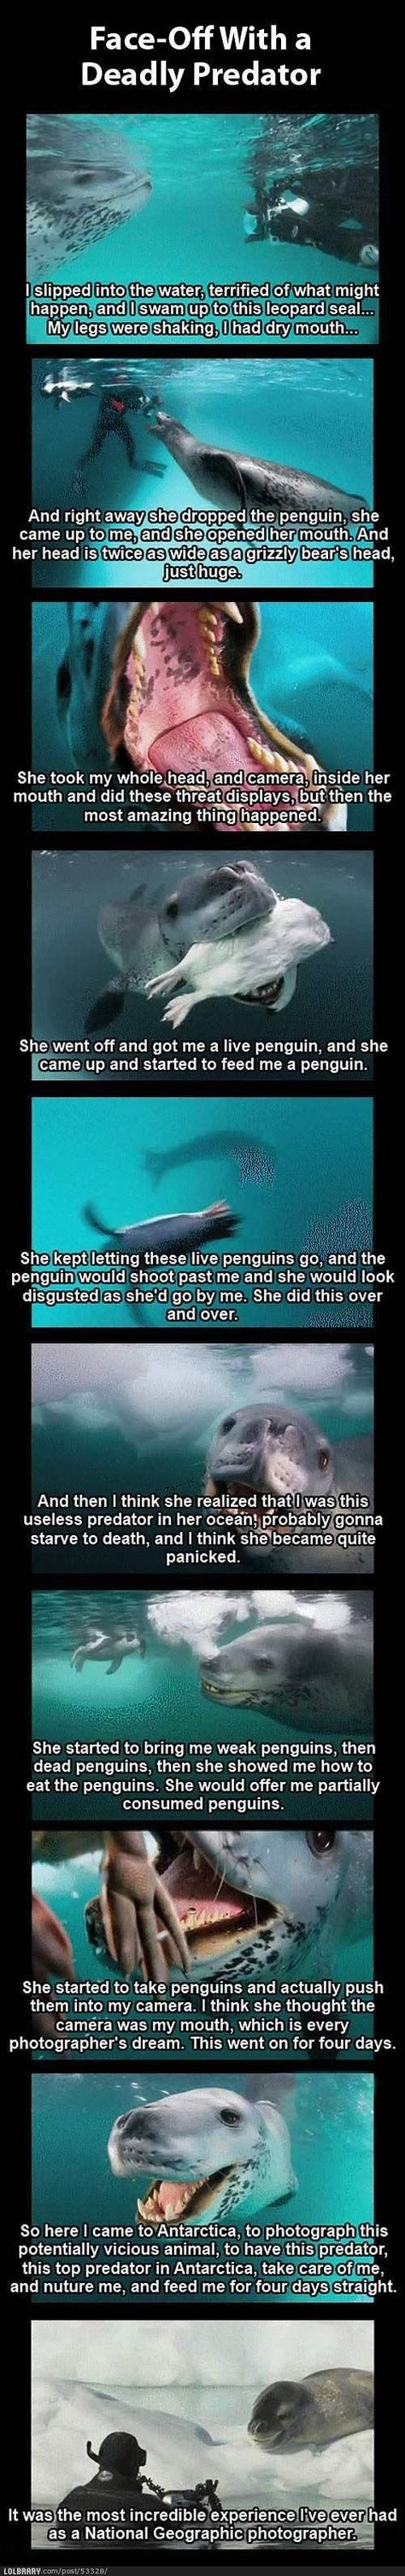 A National Geographic Photographer Faces Off with a Deadly Predator - then something suprising happens...